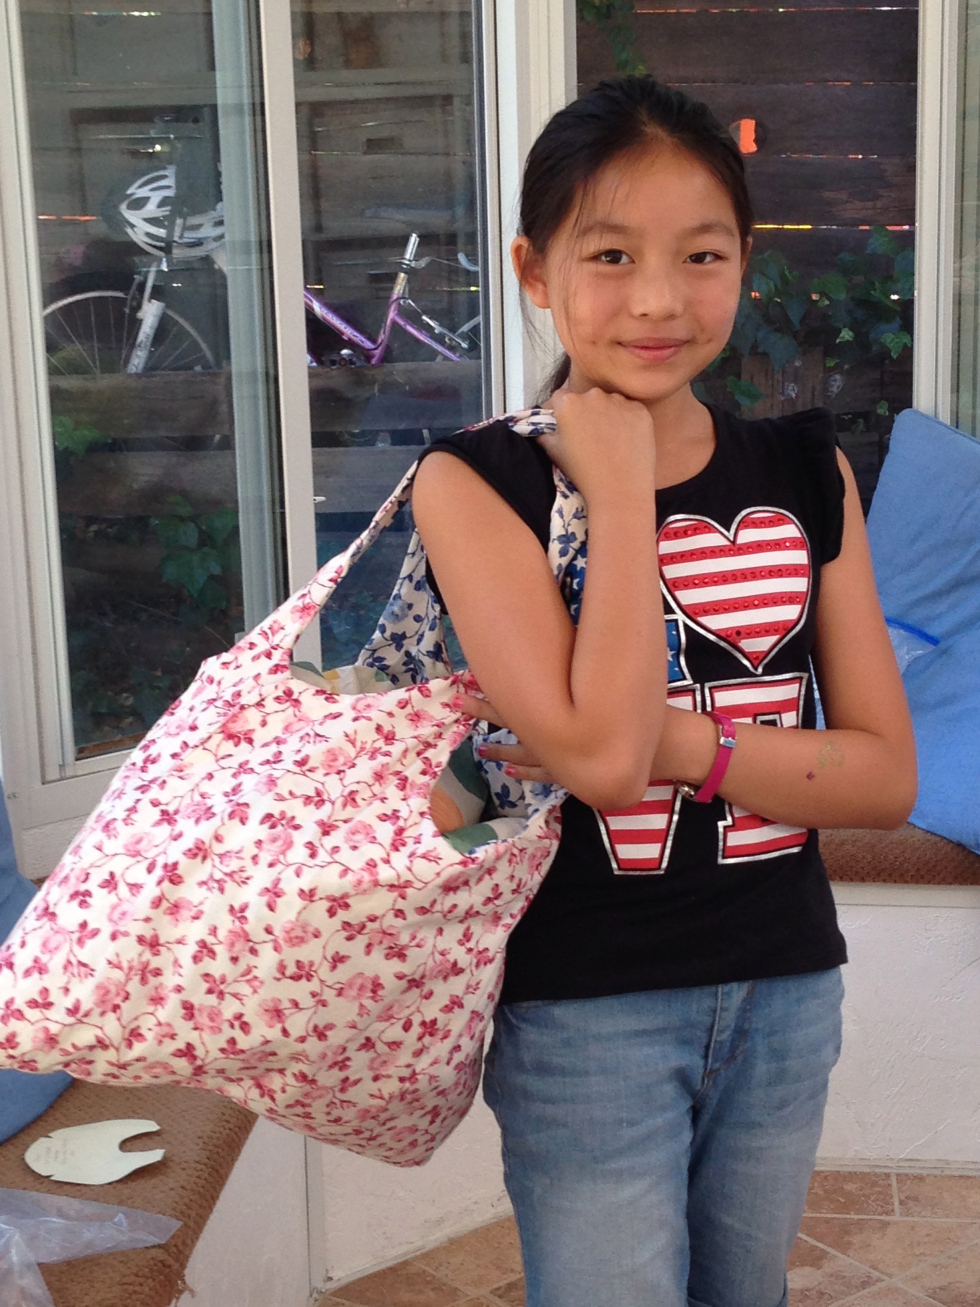 6th grader bag – to hold all her letter pillows from yesterday :o).